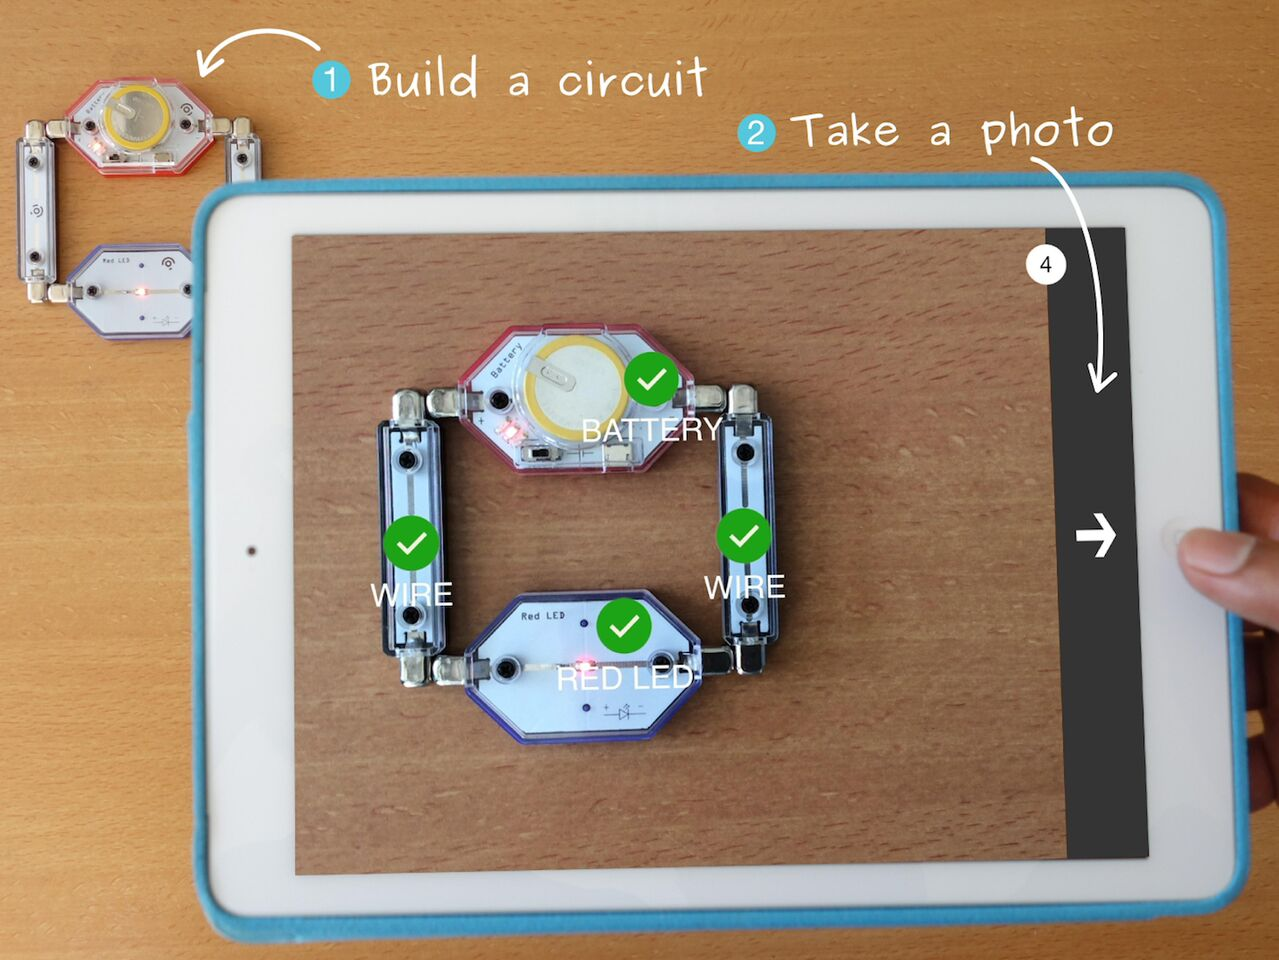 Product Review Light Up Tesla Kit App The Good Men Project Circuit Kits For Kids